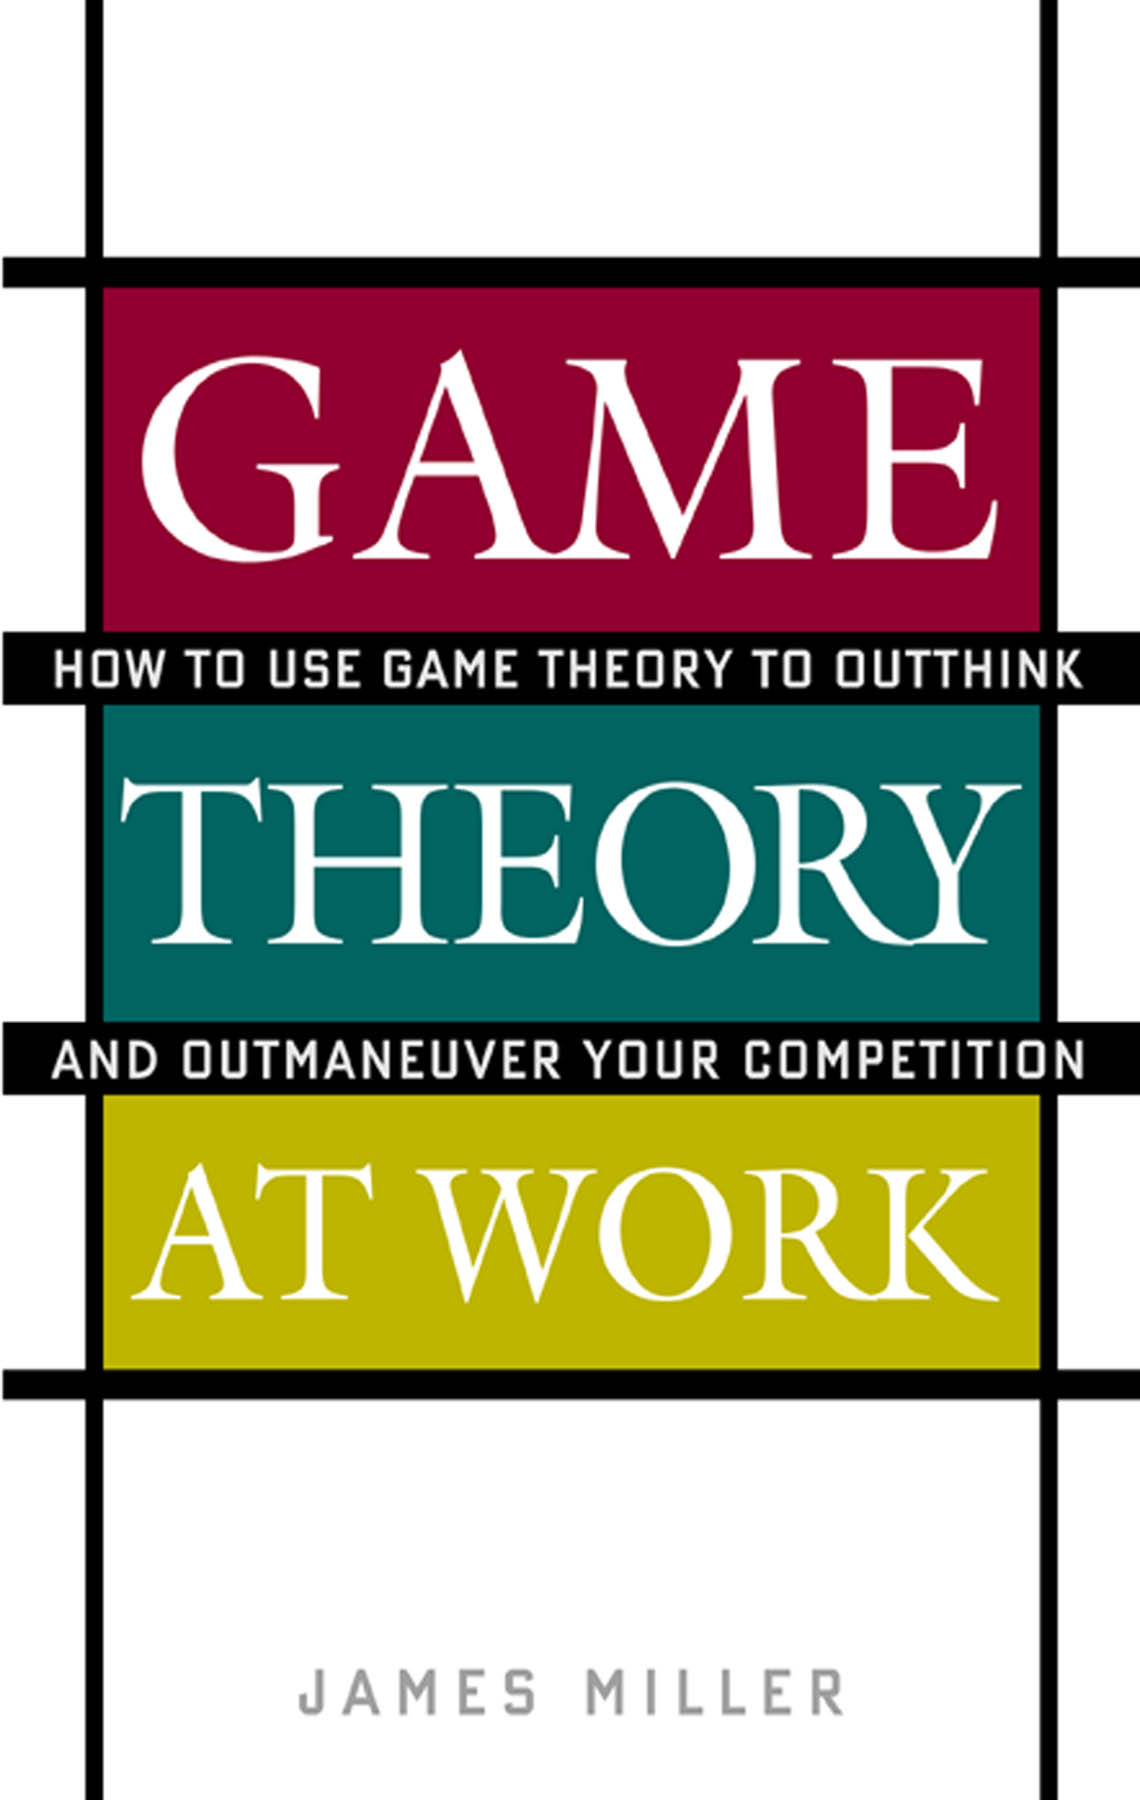 Game Theory at Work : How to Use Game Theory to Outthink and Outmaneuvar Your Competition